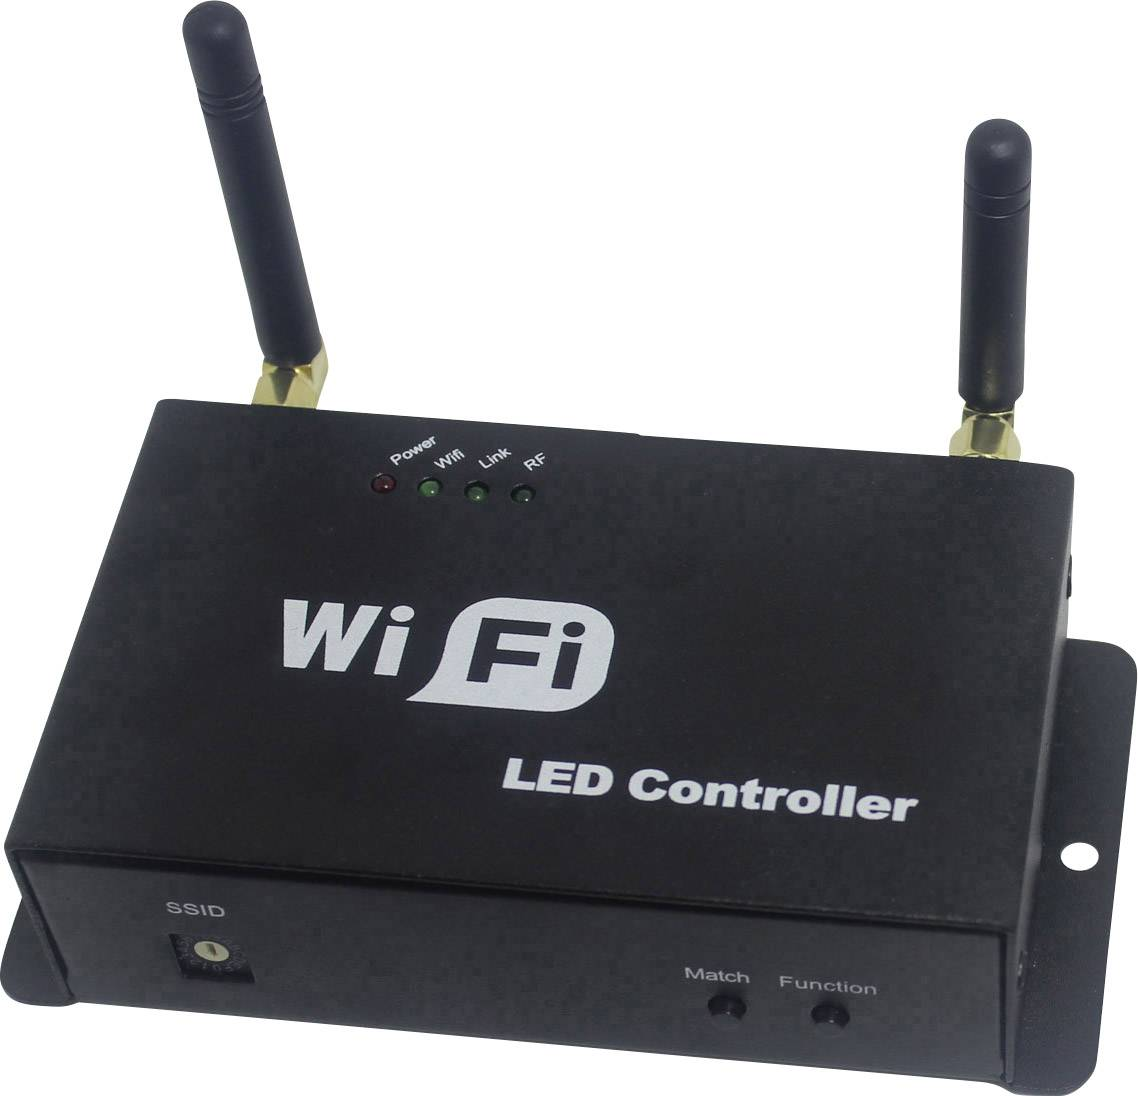 LED stmívač ledxon WLAN LED Controller 288 W 2.4 GHz 107 mm 65 mm 55 mm